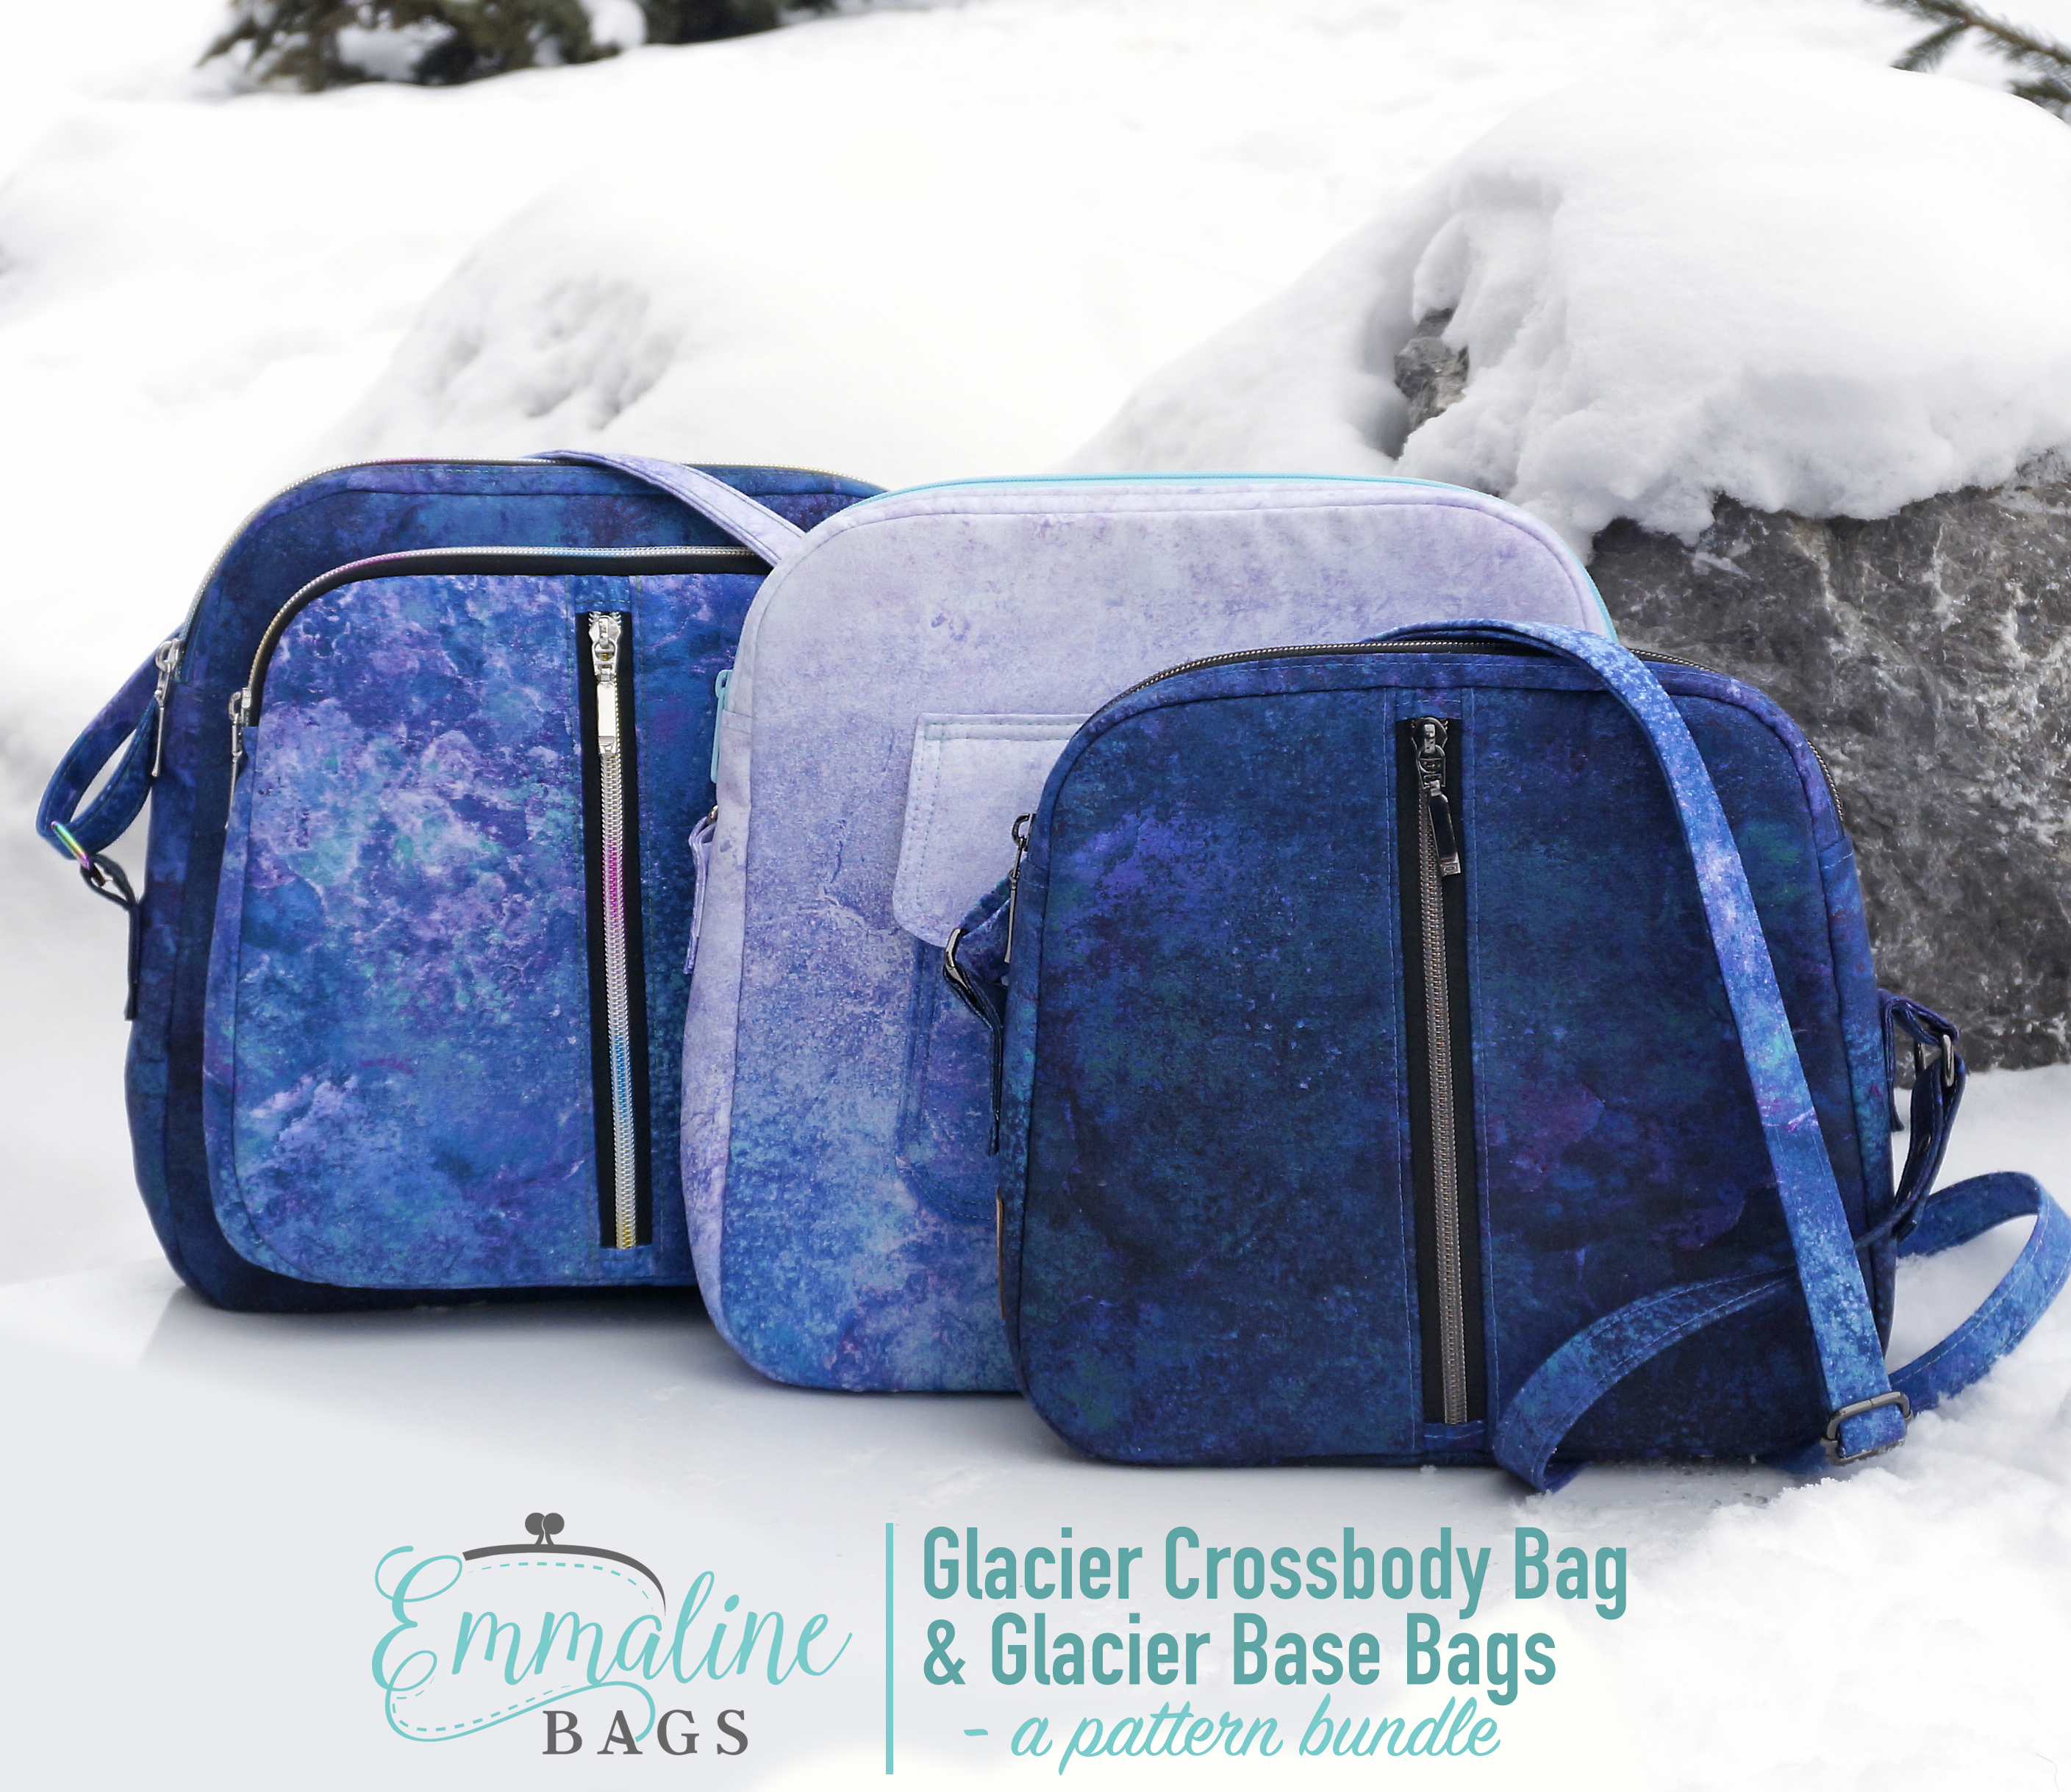 The Glacier Crossbody & Glacier Base Bags by Emmaline Bags